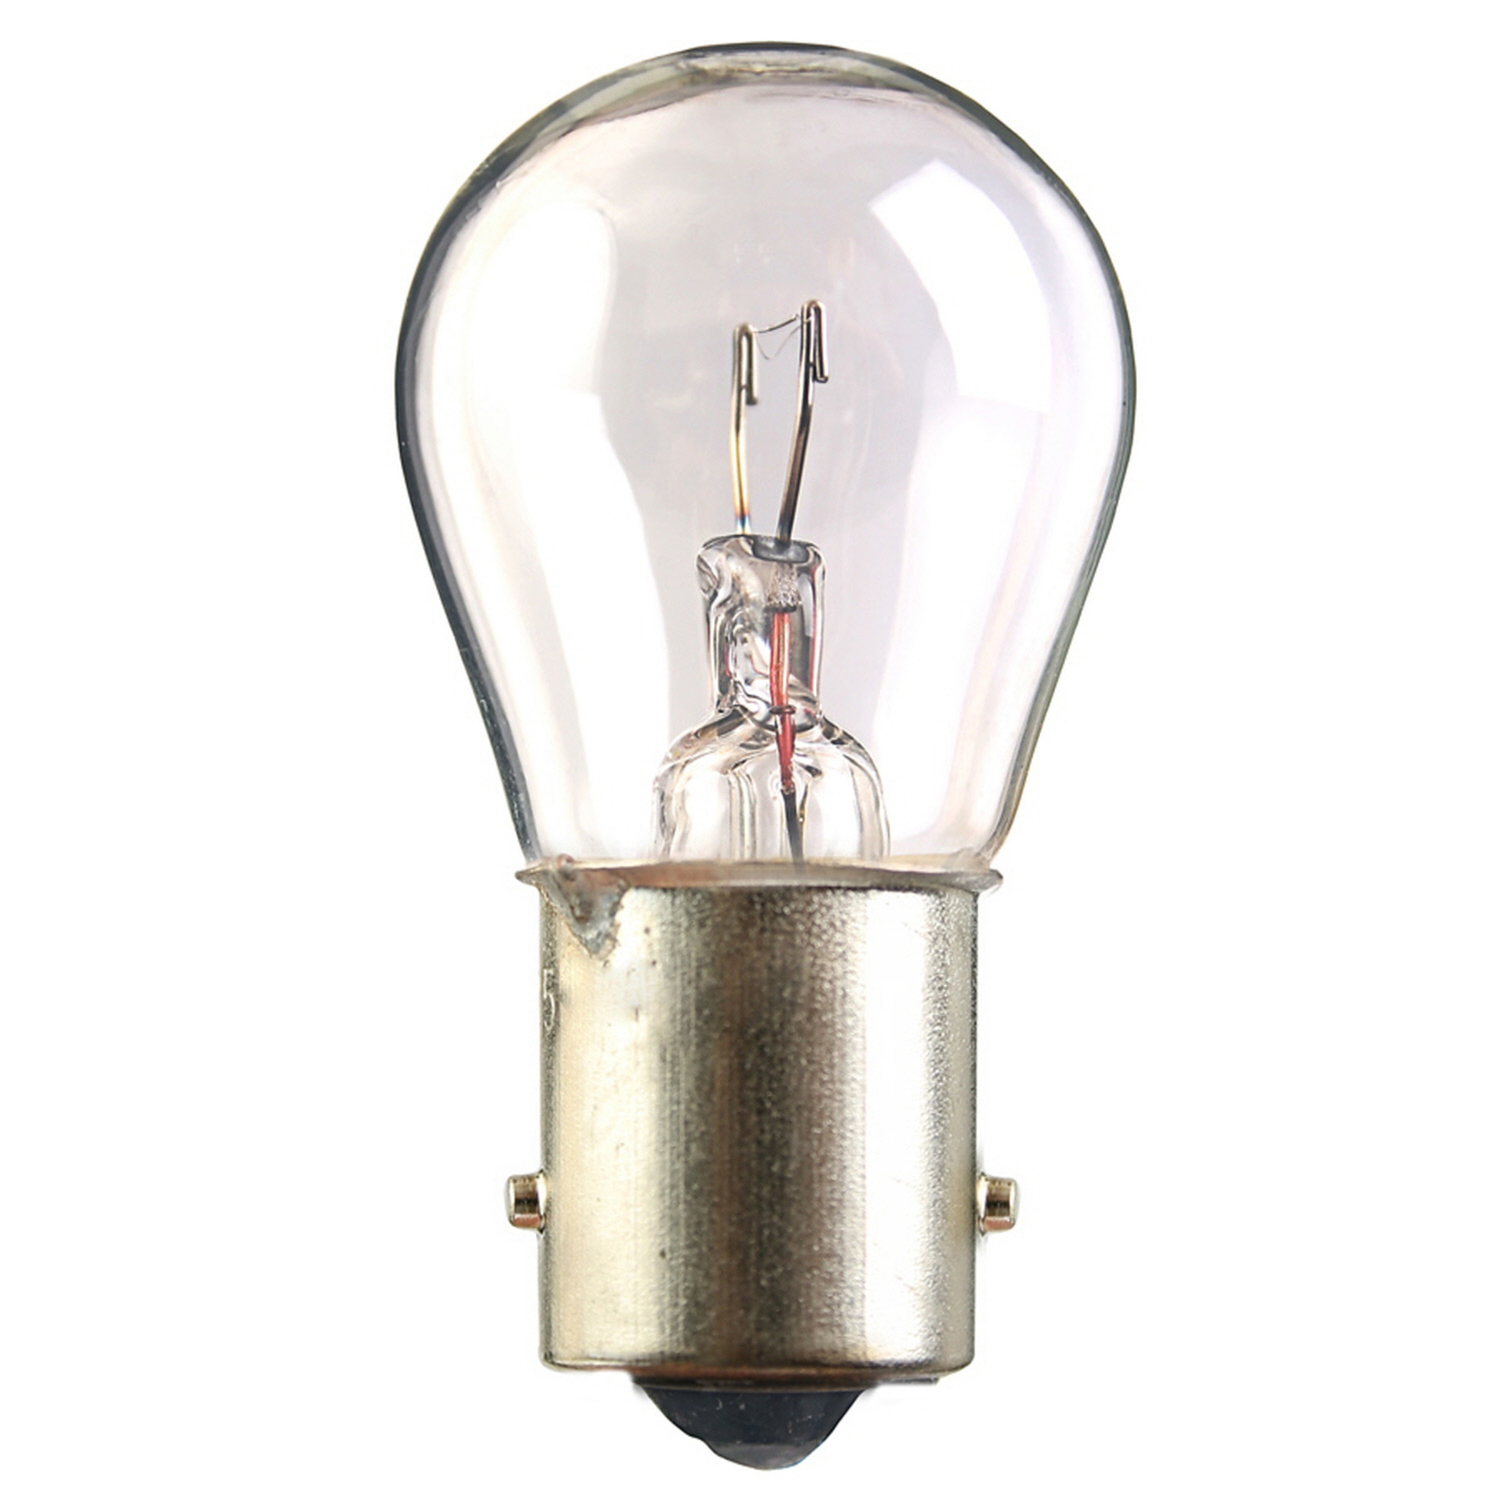 WAGNER LIGHTING - Turn Signal Light Bulb - WLP 7506L